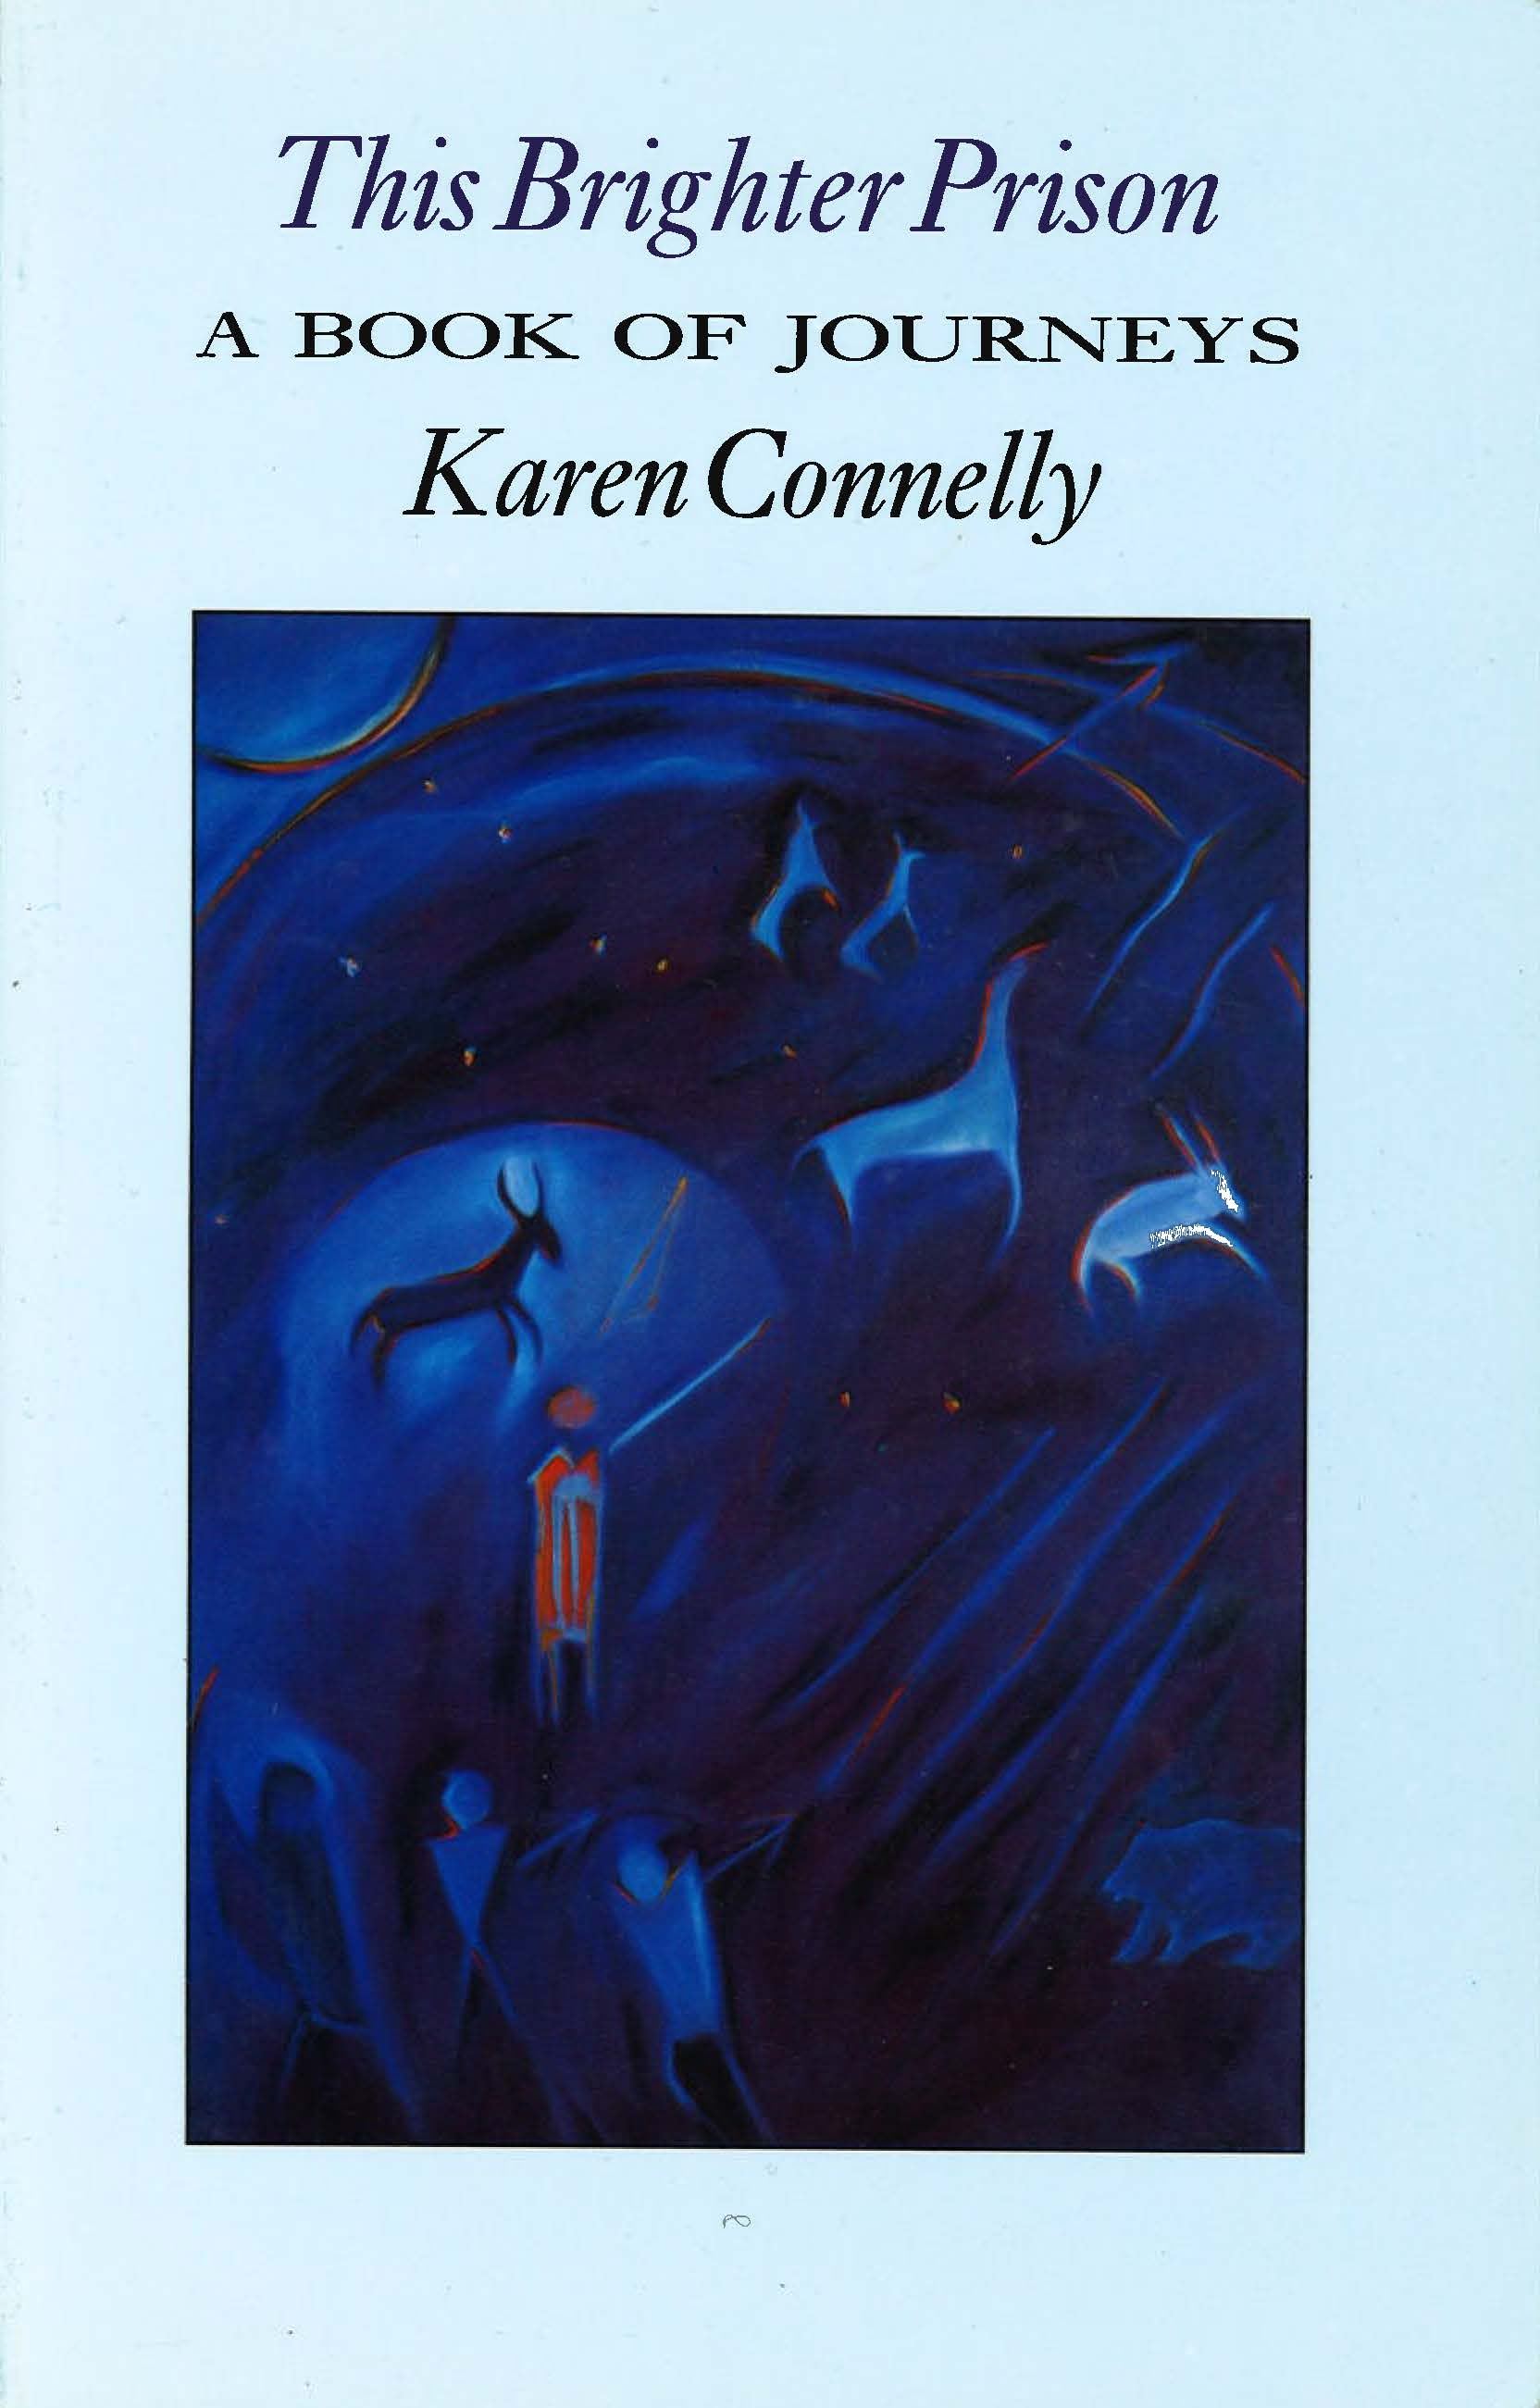 This Brighter Prison by Karen Connelly